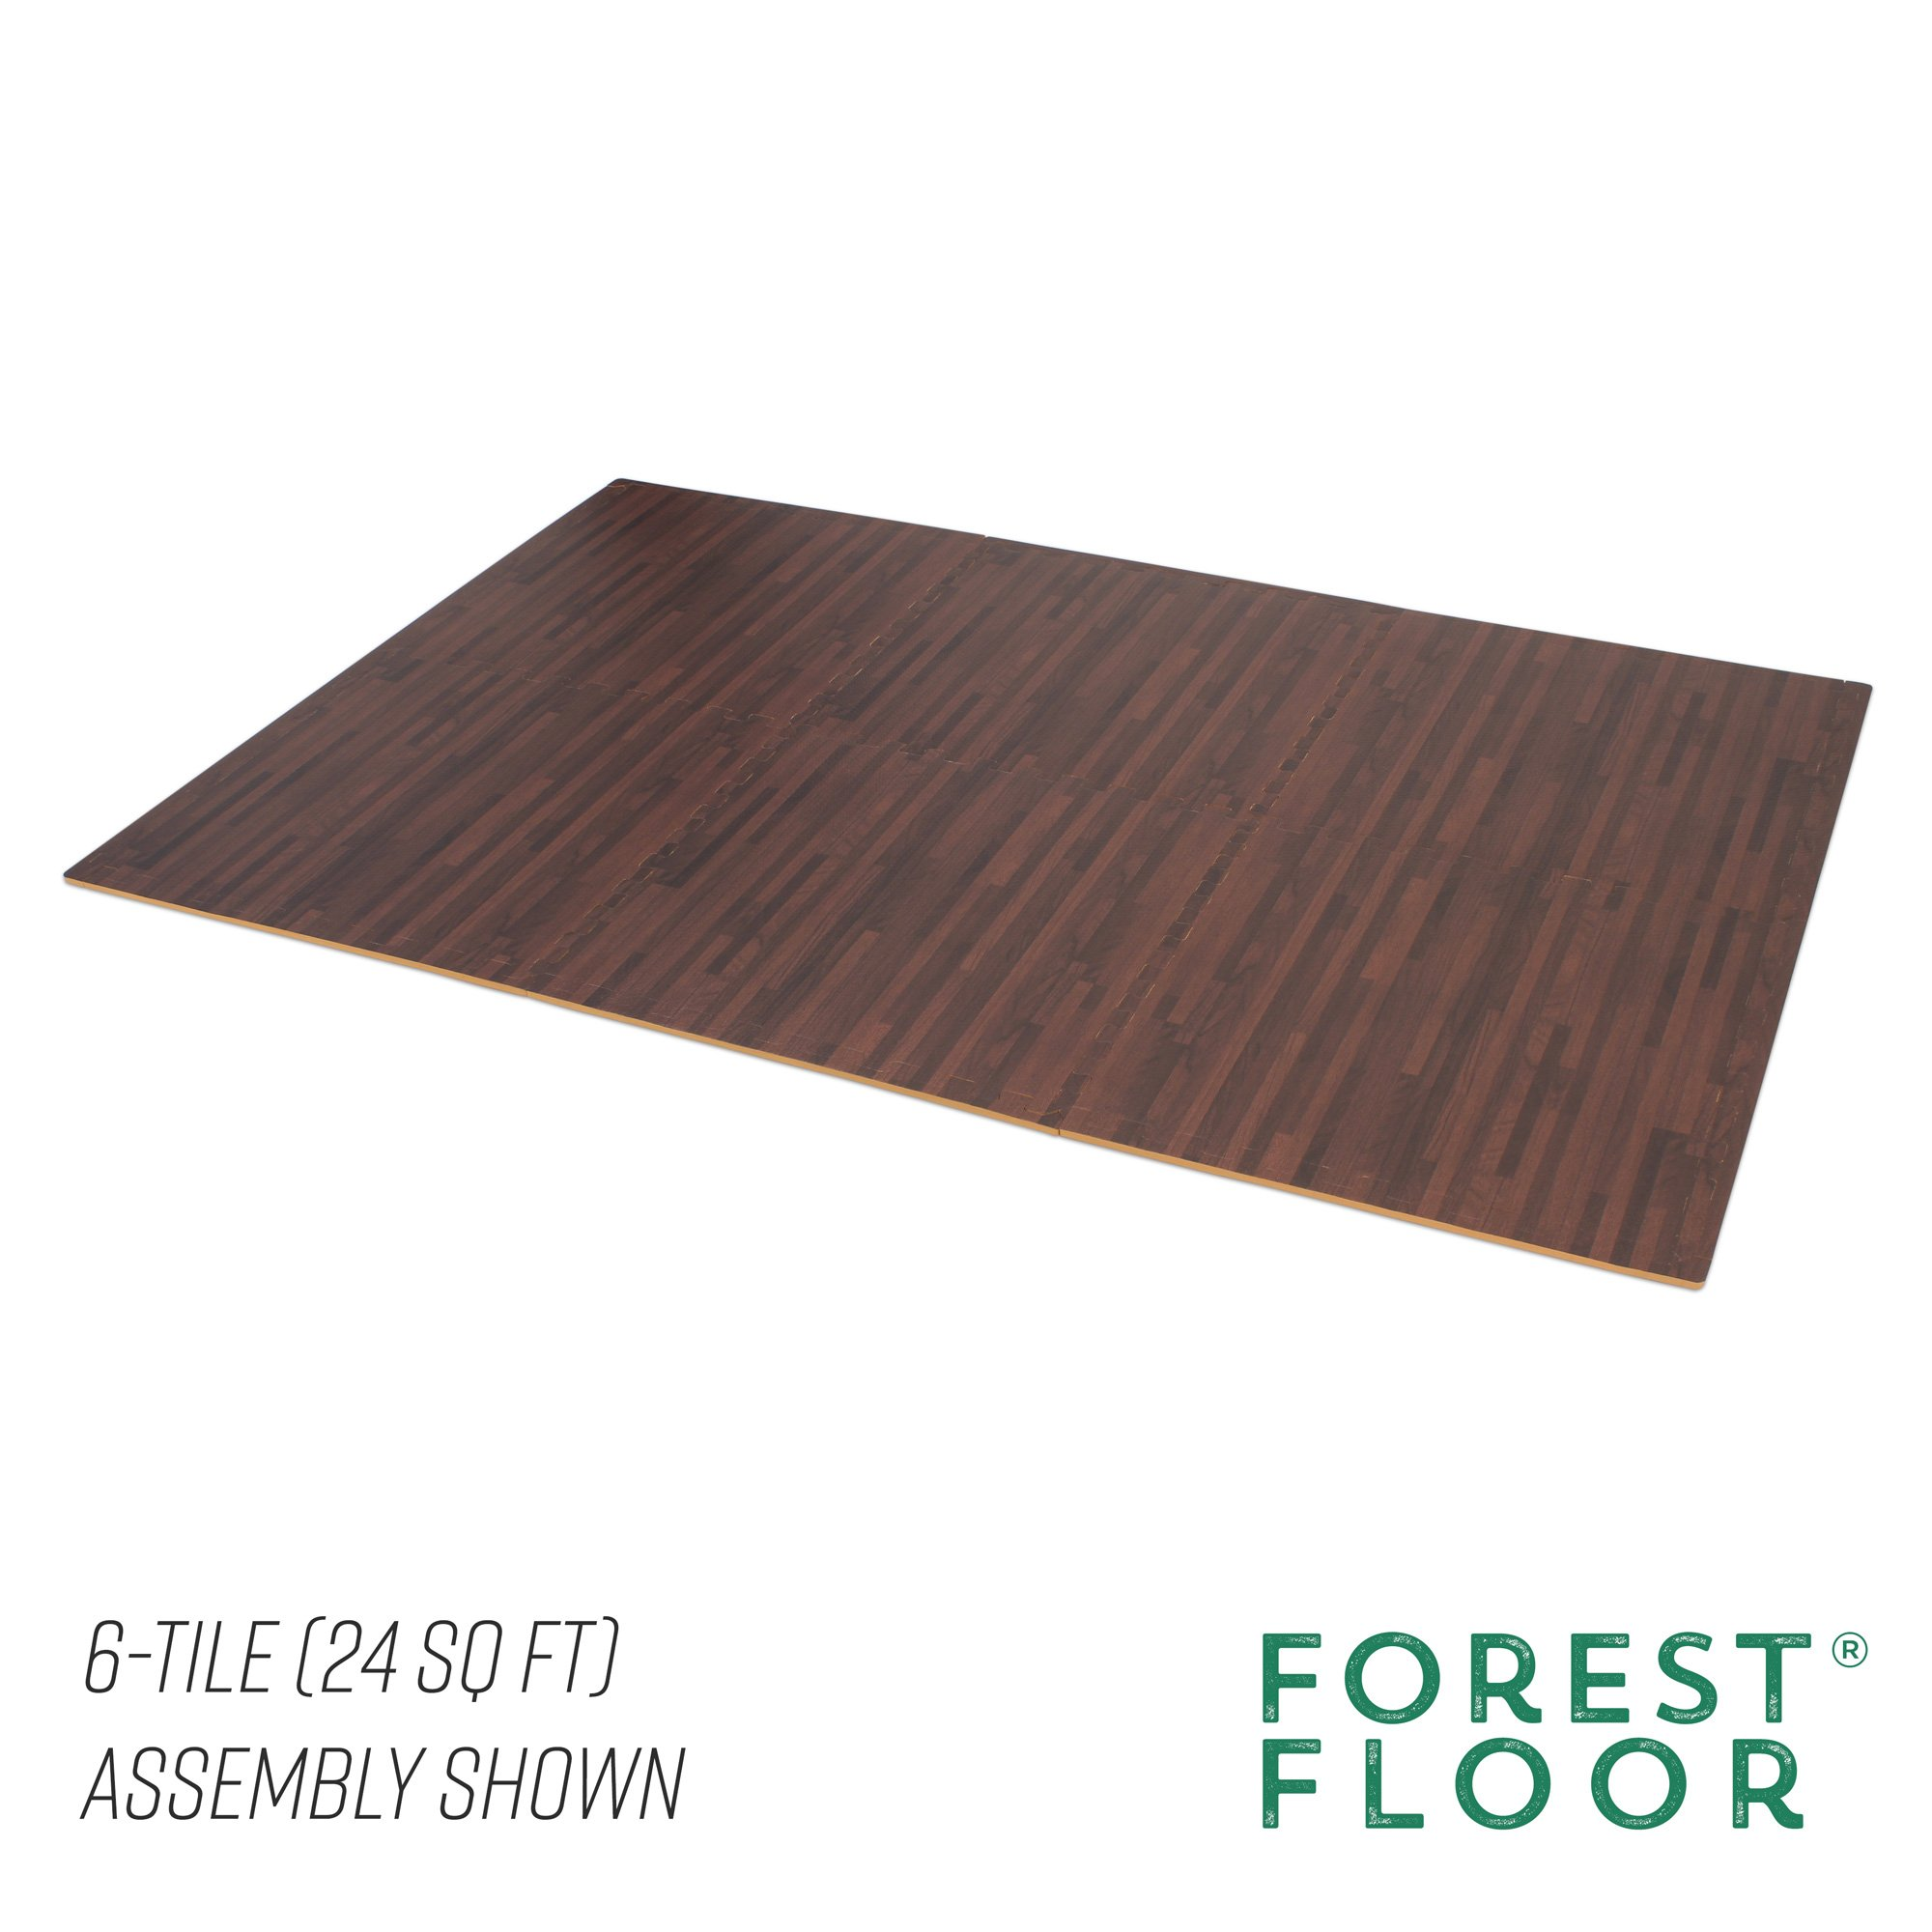 Forest Floor 3/8'' Thick Printed Wood Grain Interlocking Foam Floor Mats, 16 Sq Ft (4 Tiles), Cherry by Forest Floor (Image #5)